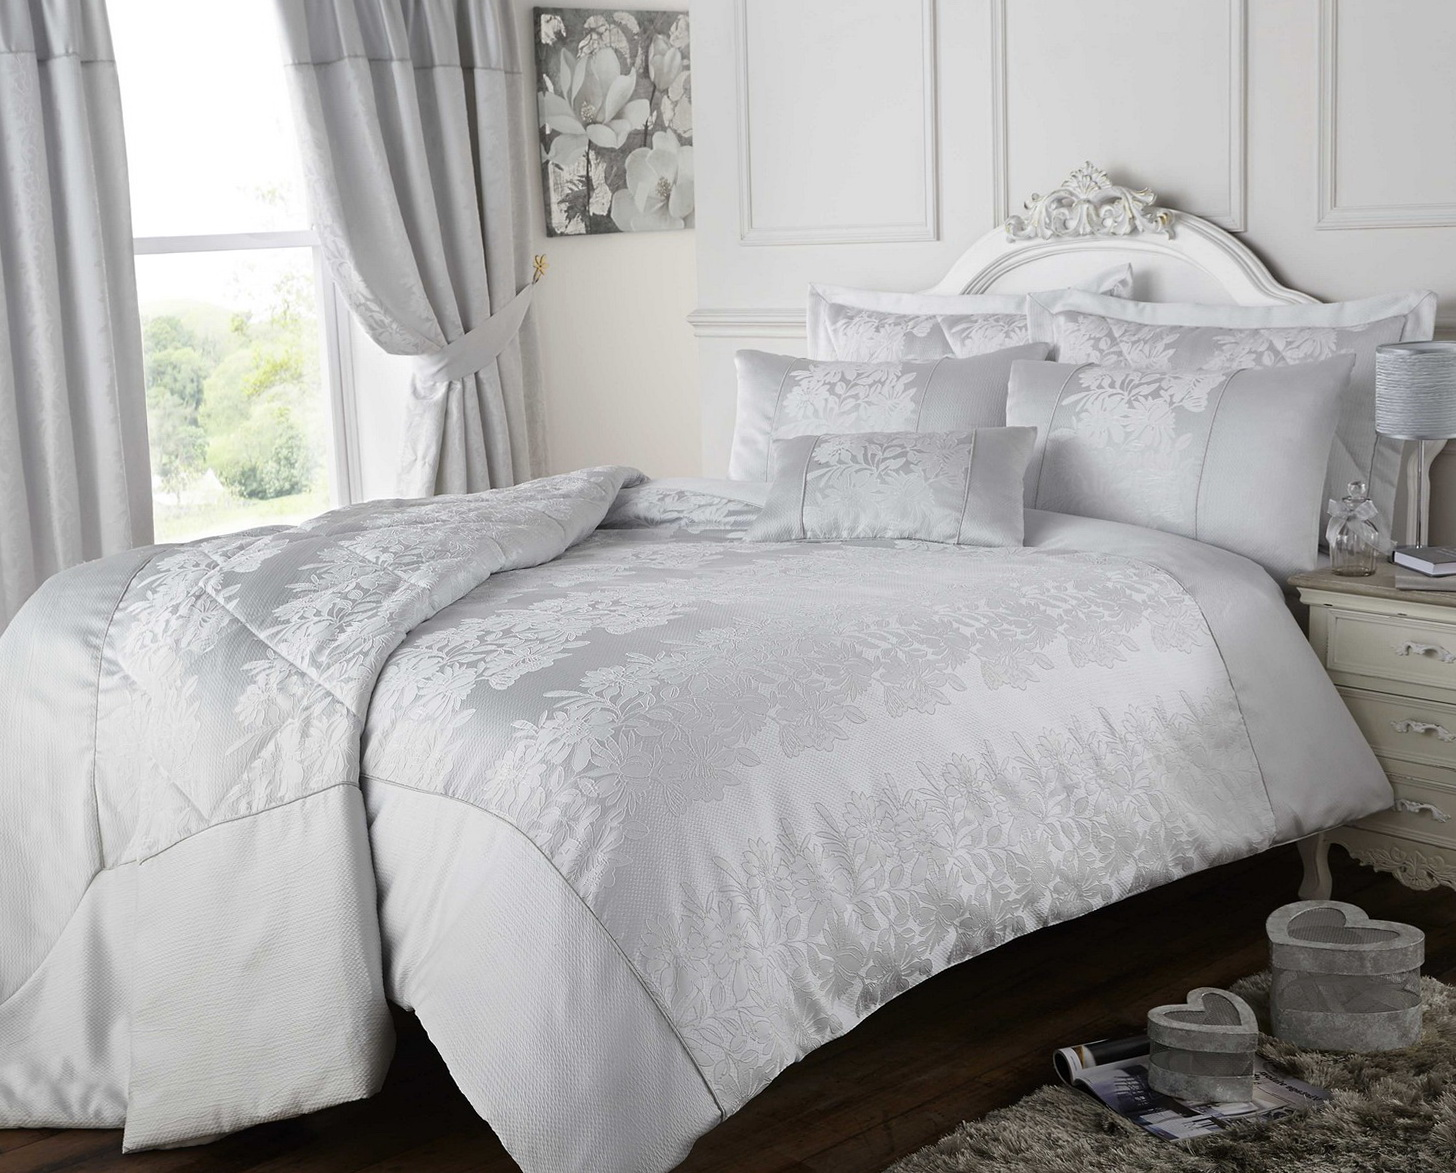 Bedding And Curtain Sets Golden Curtains Combined With Comforter Grey Bedding And Curtain Sets